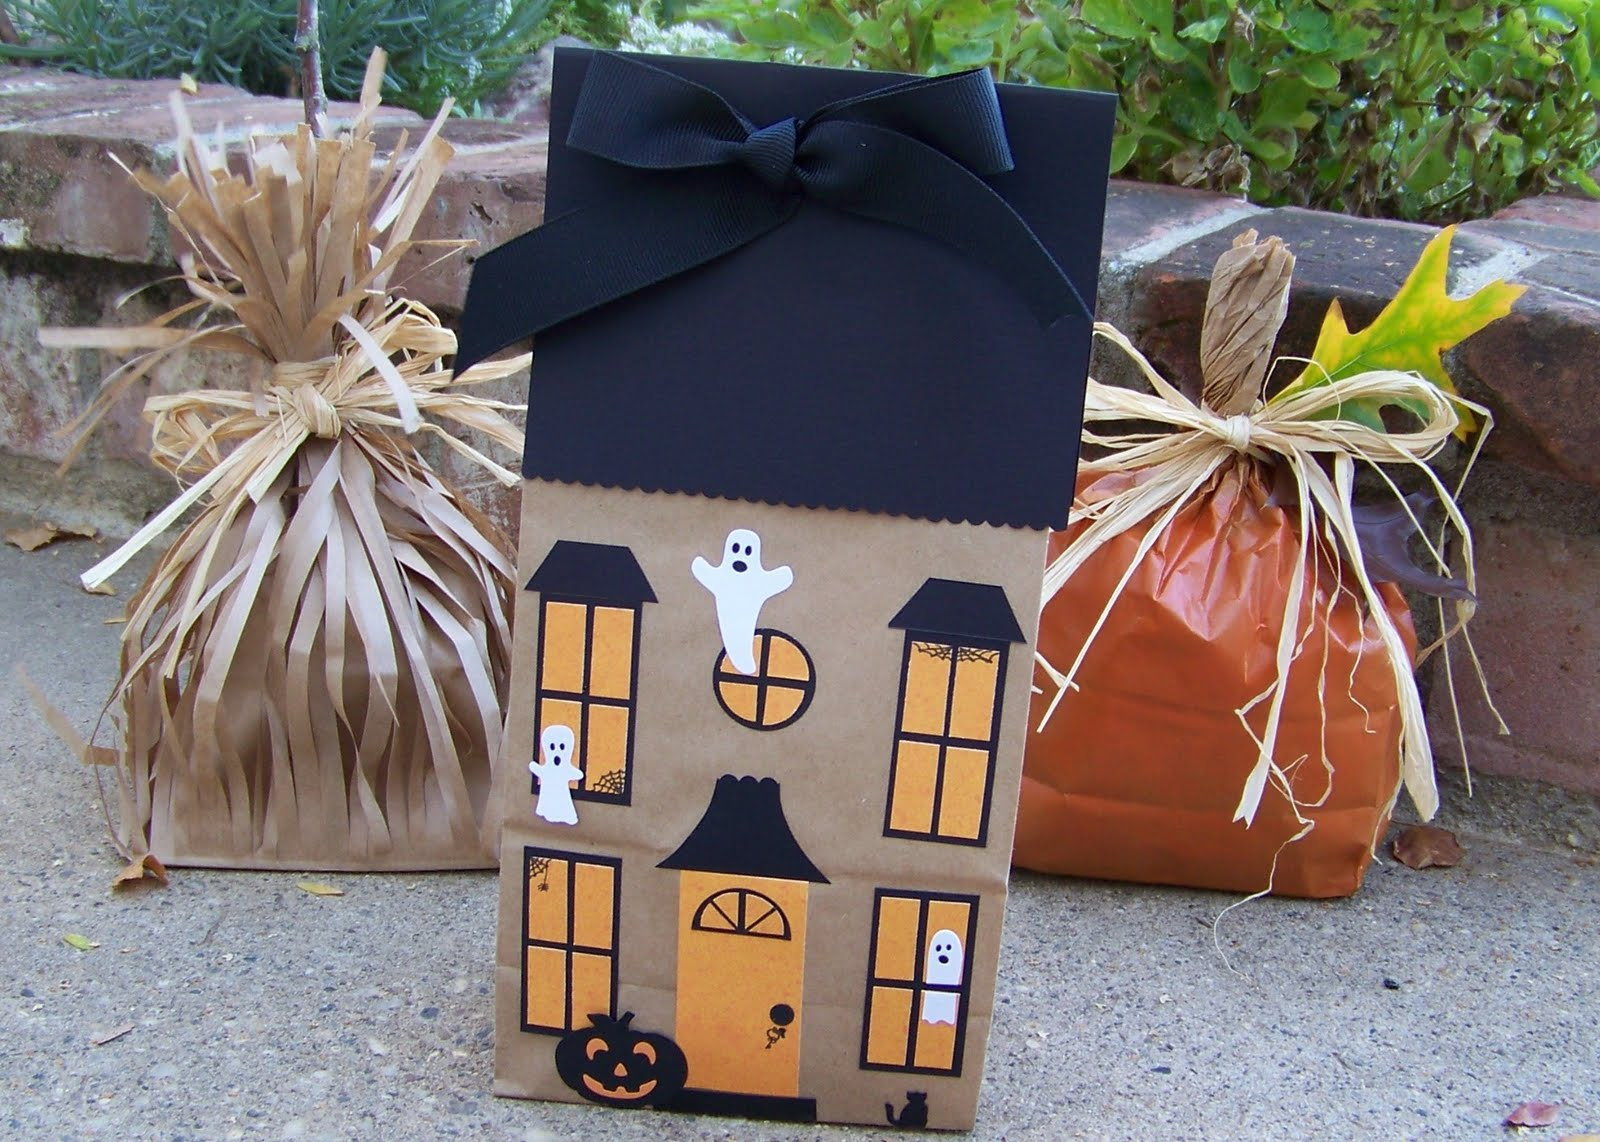 3 Designs of Cute Crafts Using Paper Bags Paper Lunch Sack Craft Ideas For Fall Dollar Store Crafts